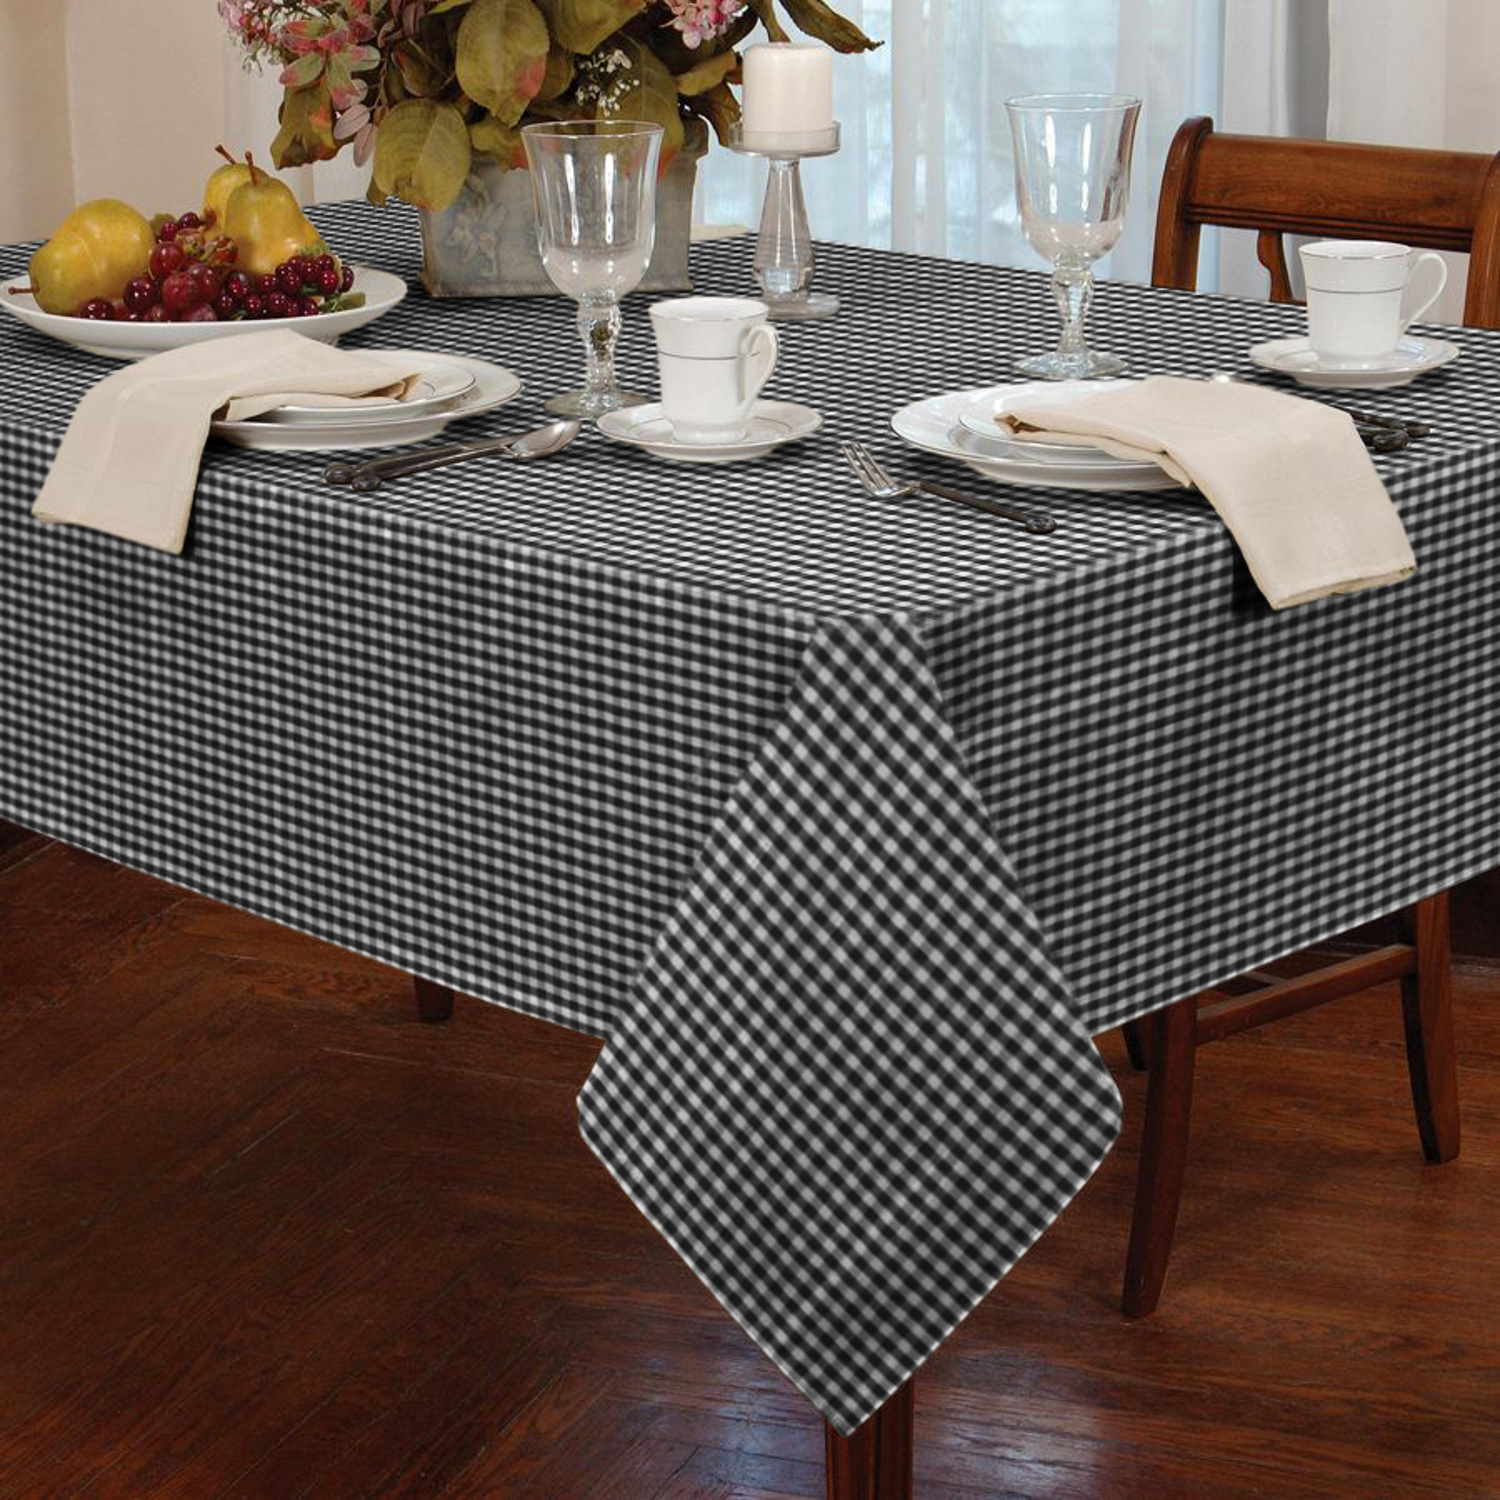 Garden picnic gingham check tablecloth dining room table linen kitchen cover mat ebay - Dining room table mats ...